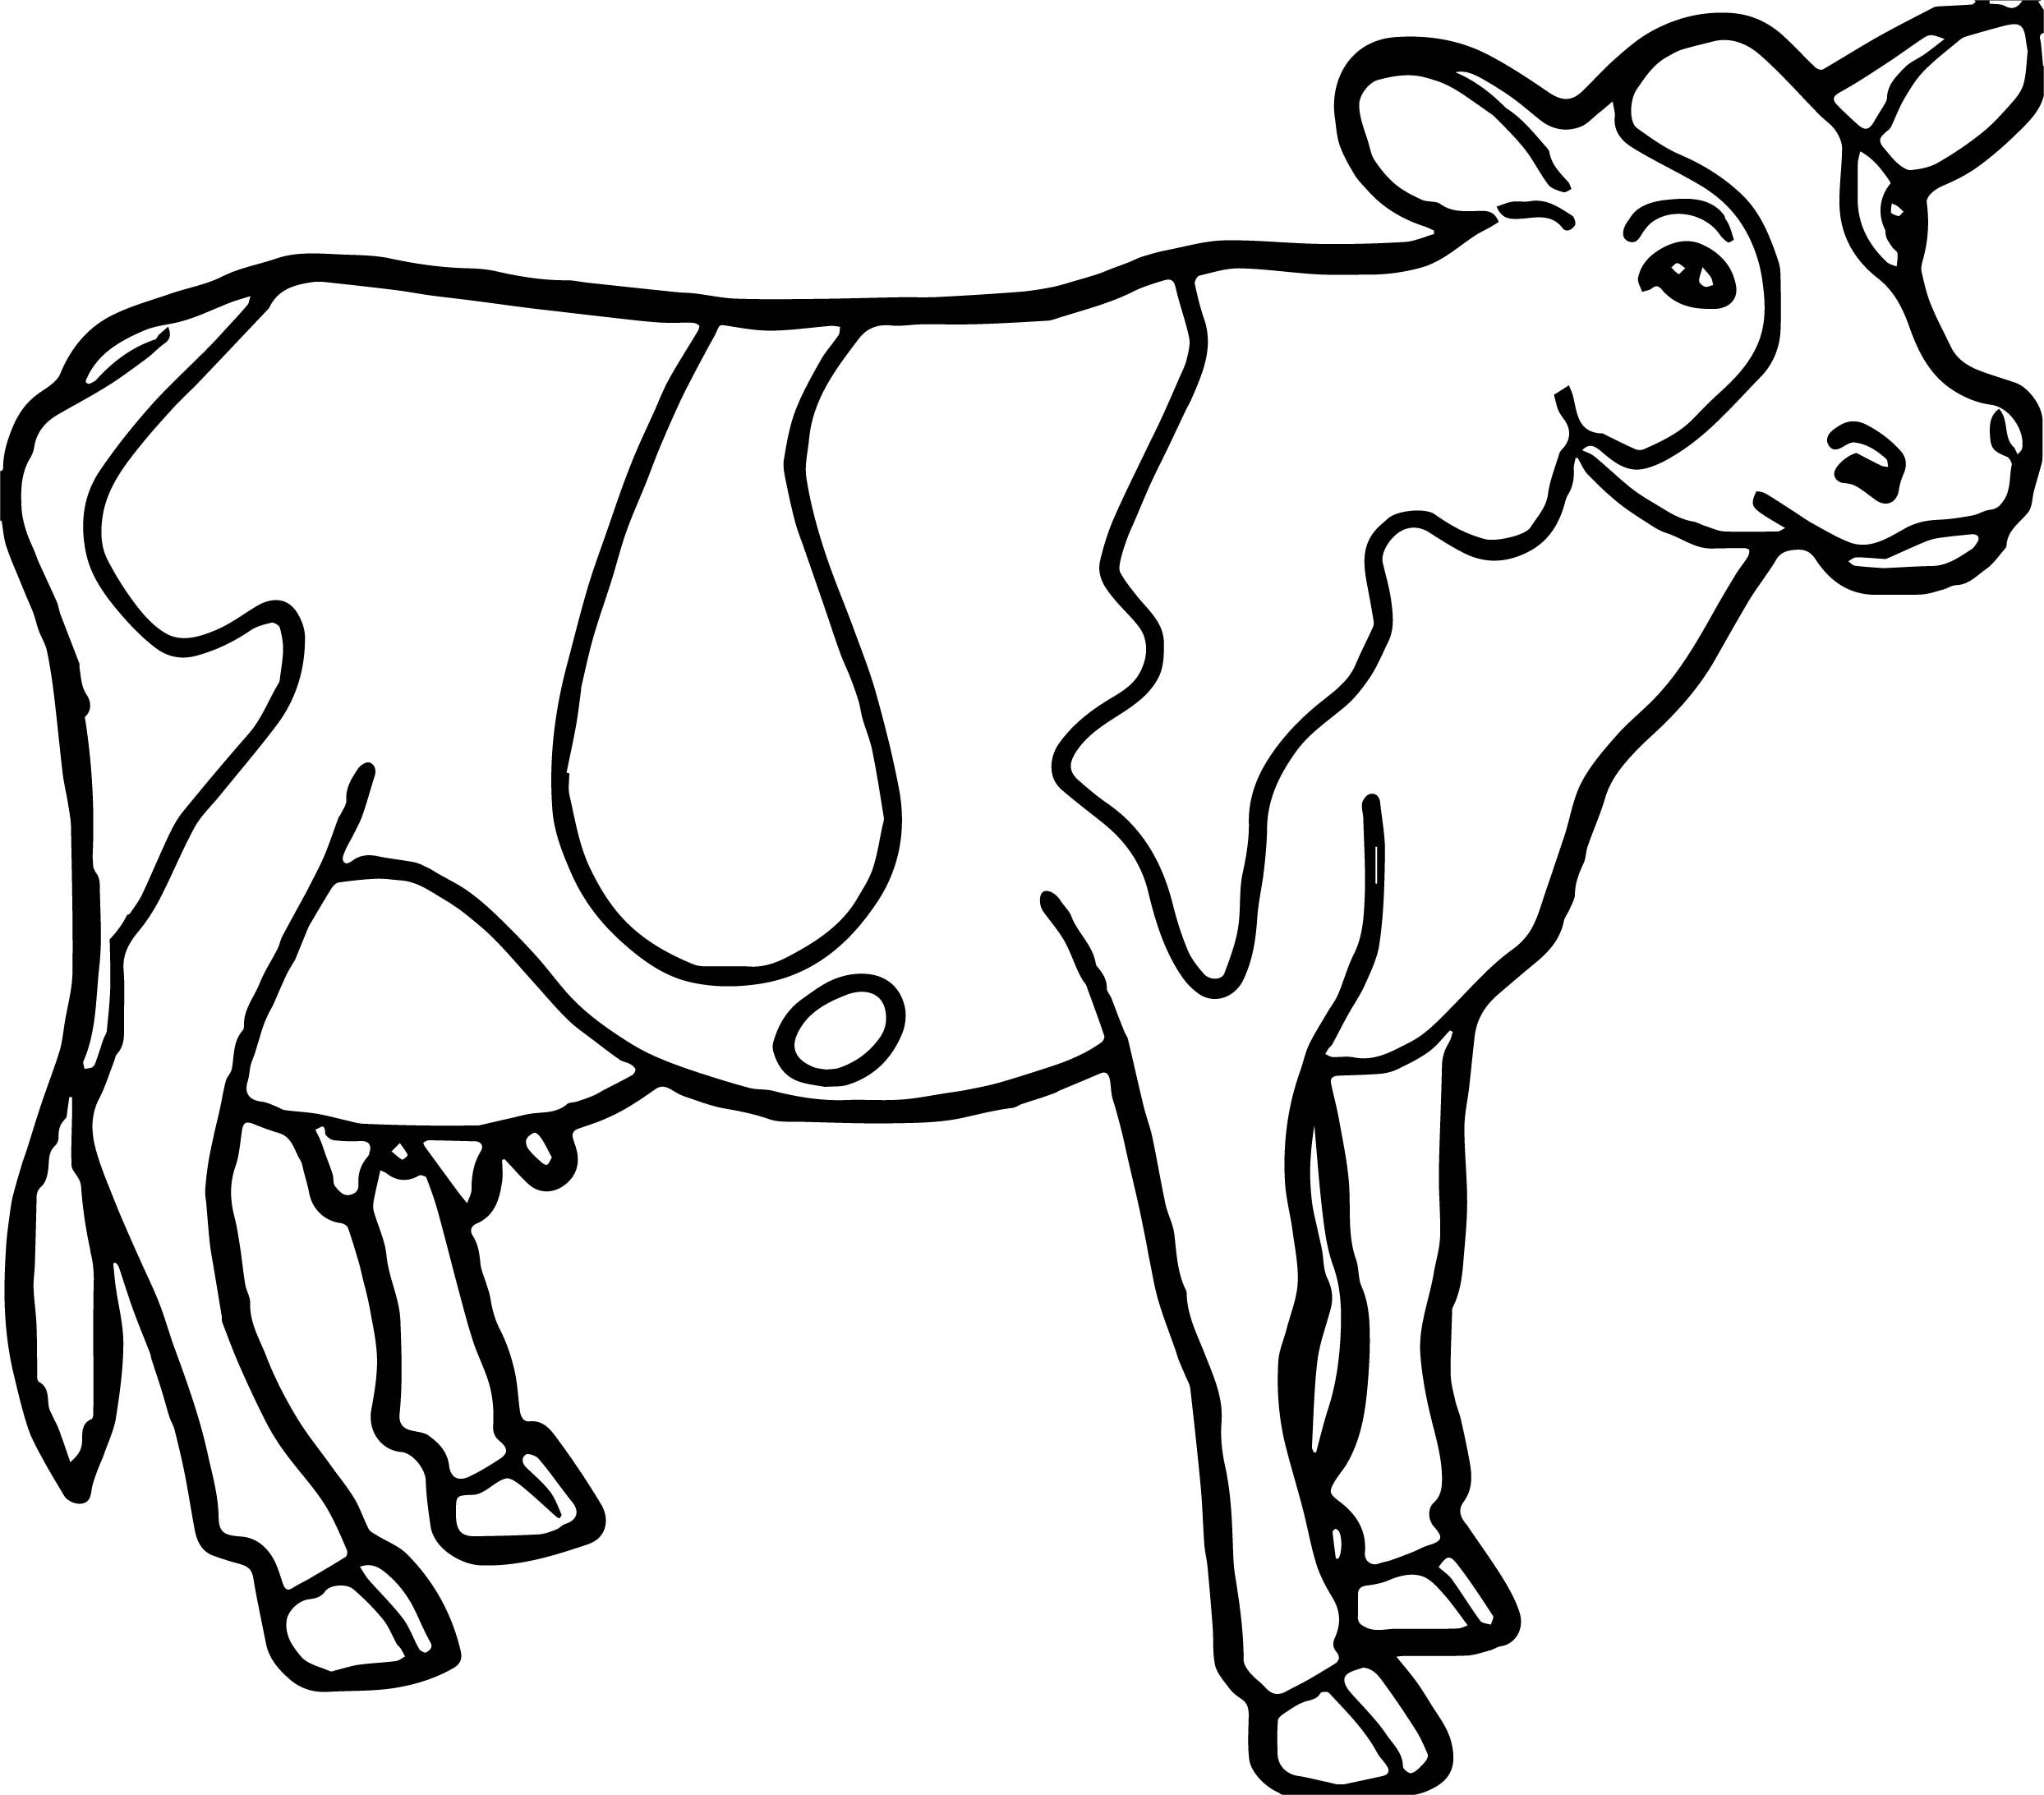 cow coloring page cow face coloring pages at getcoloringscom free coloring cow page